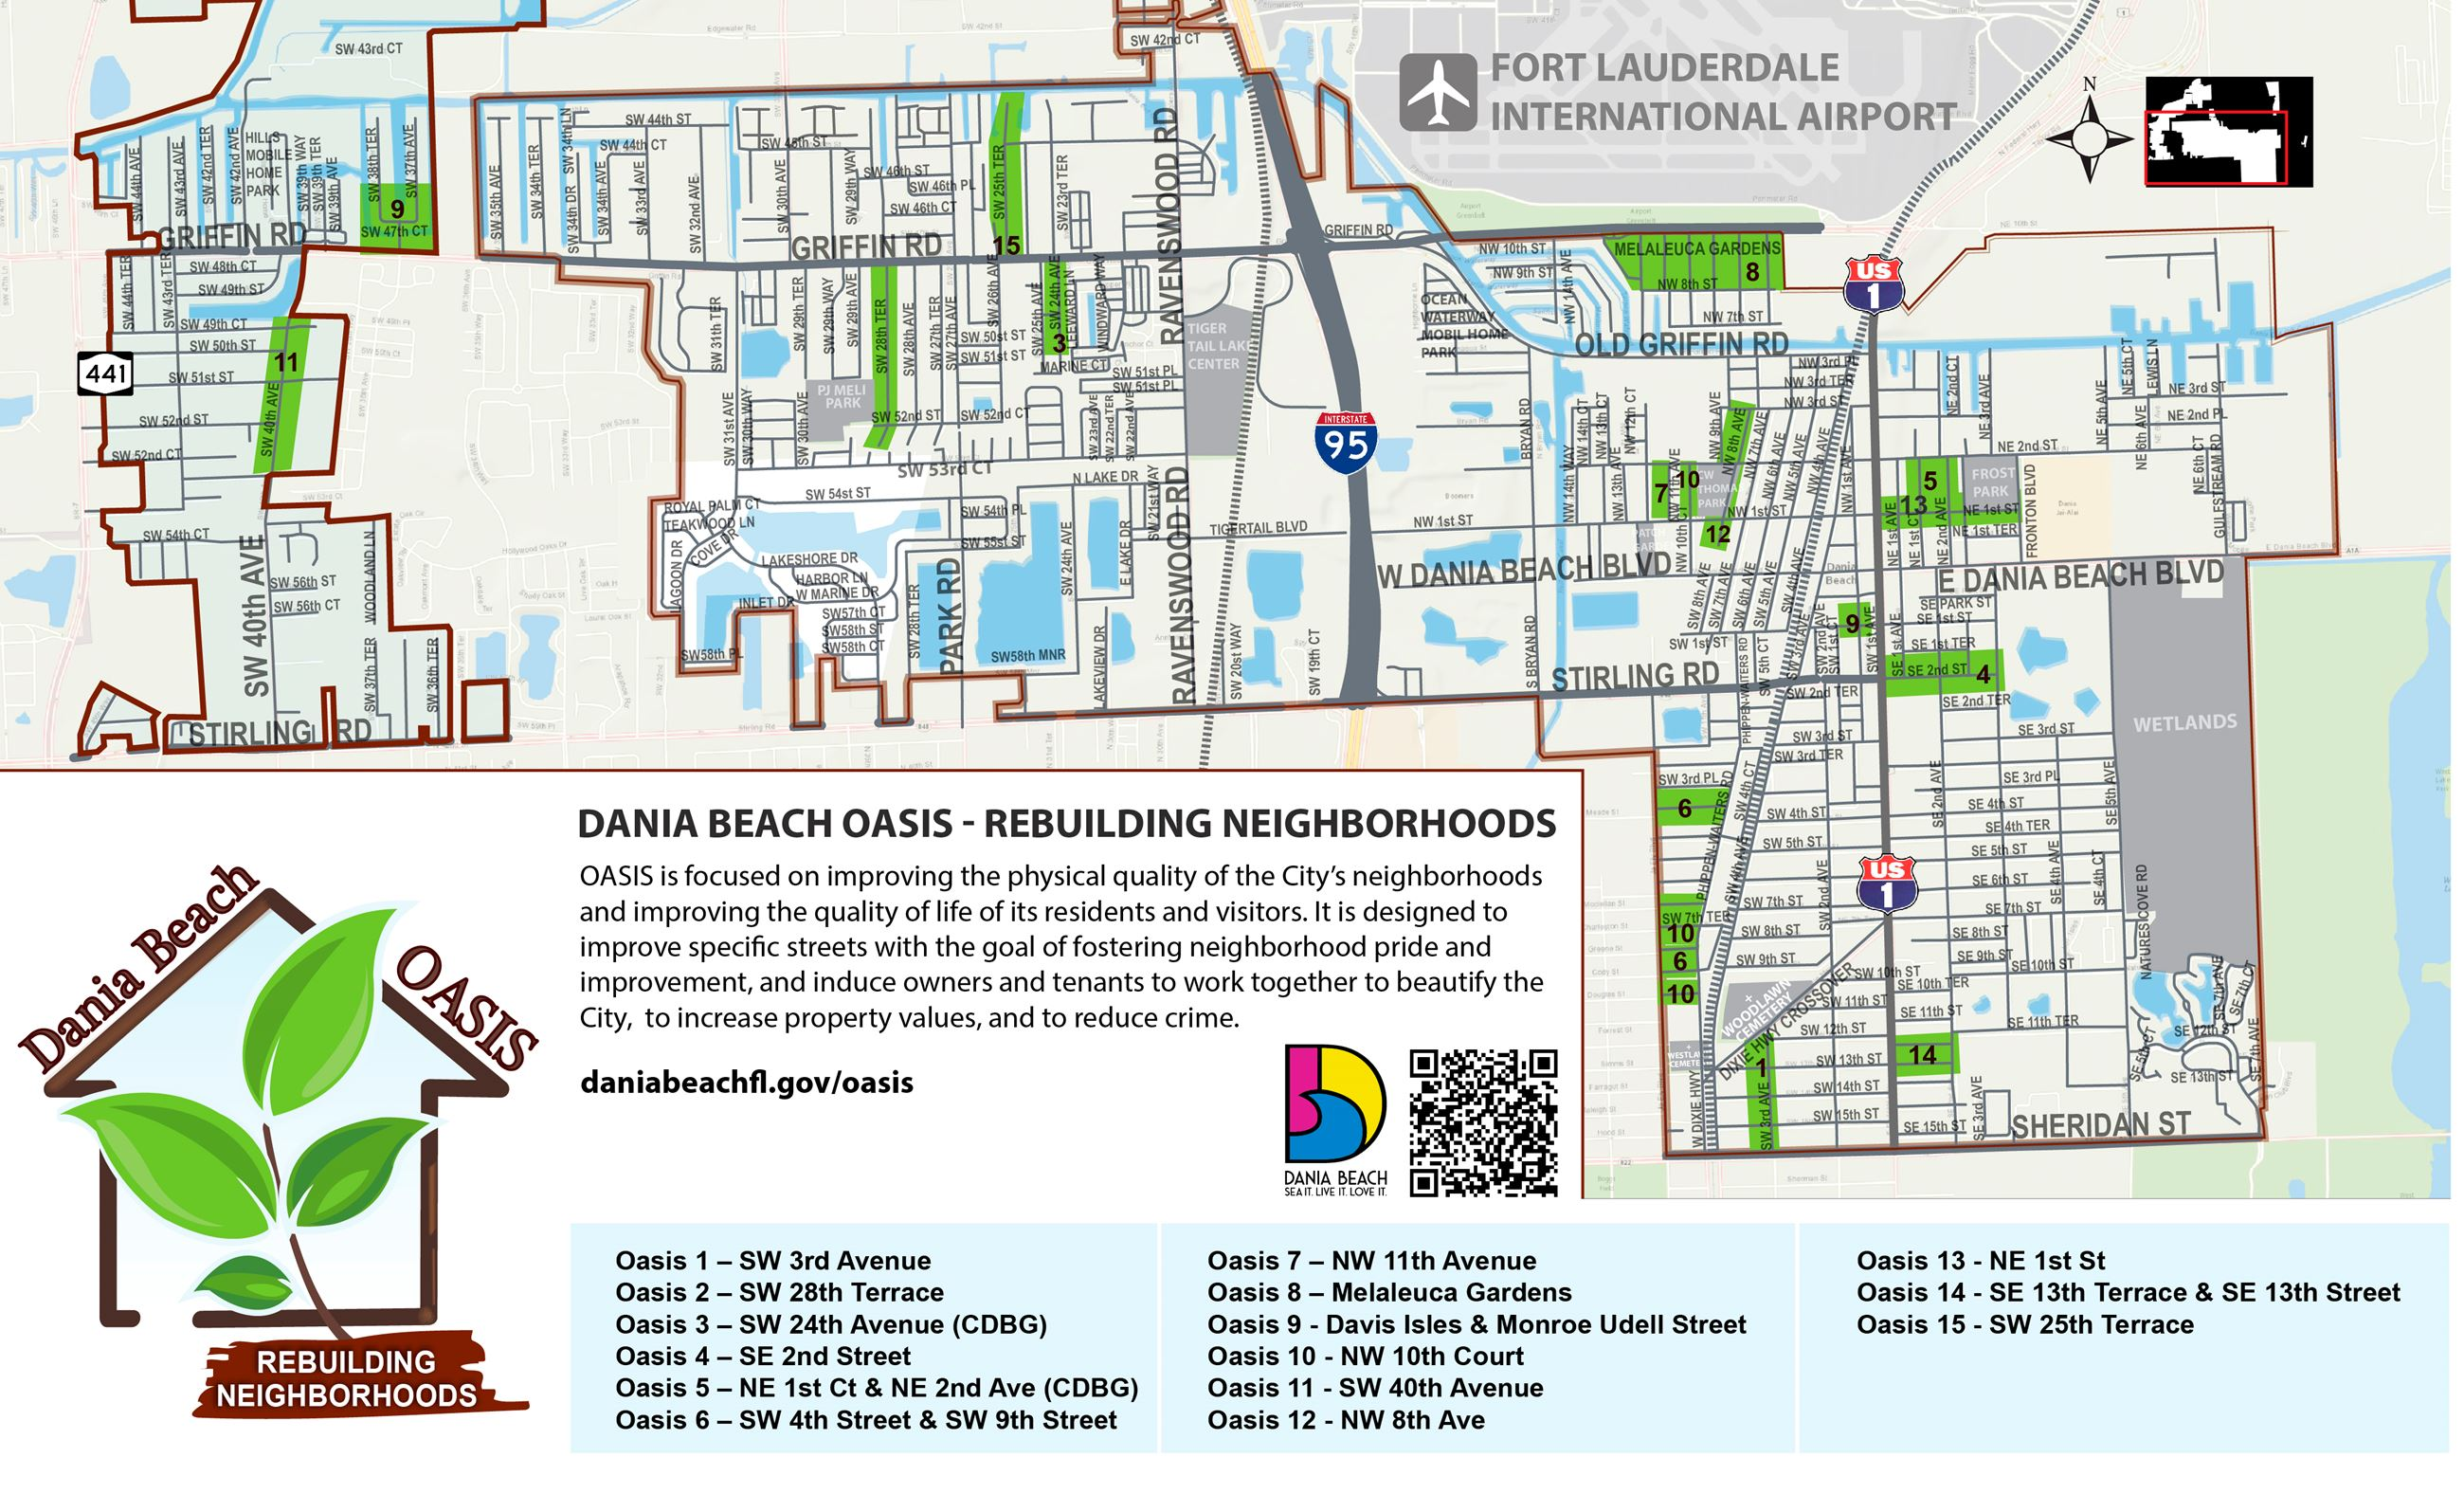 Dania Beach Oasis Map - Rebuilding Neighborhoods